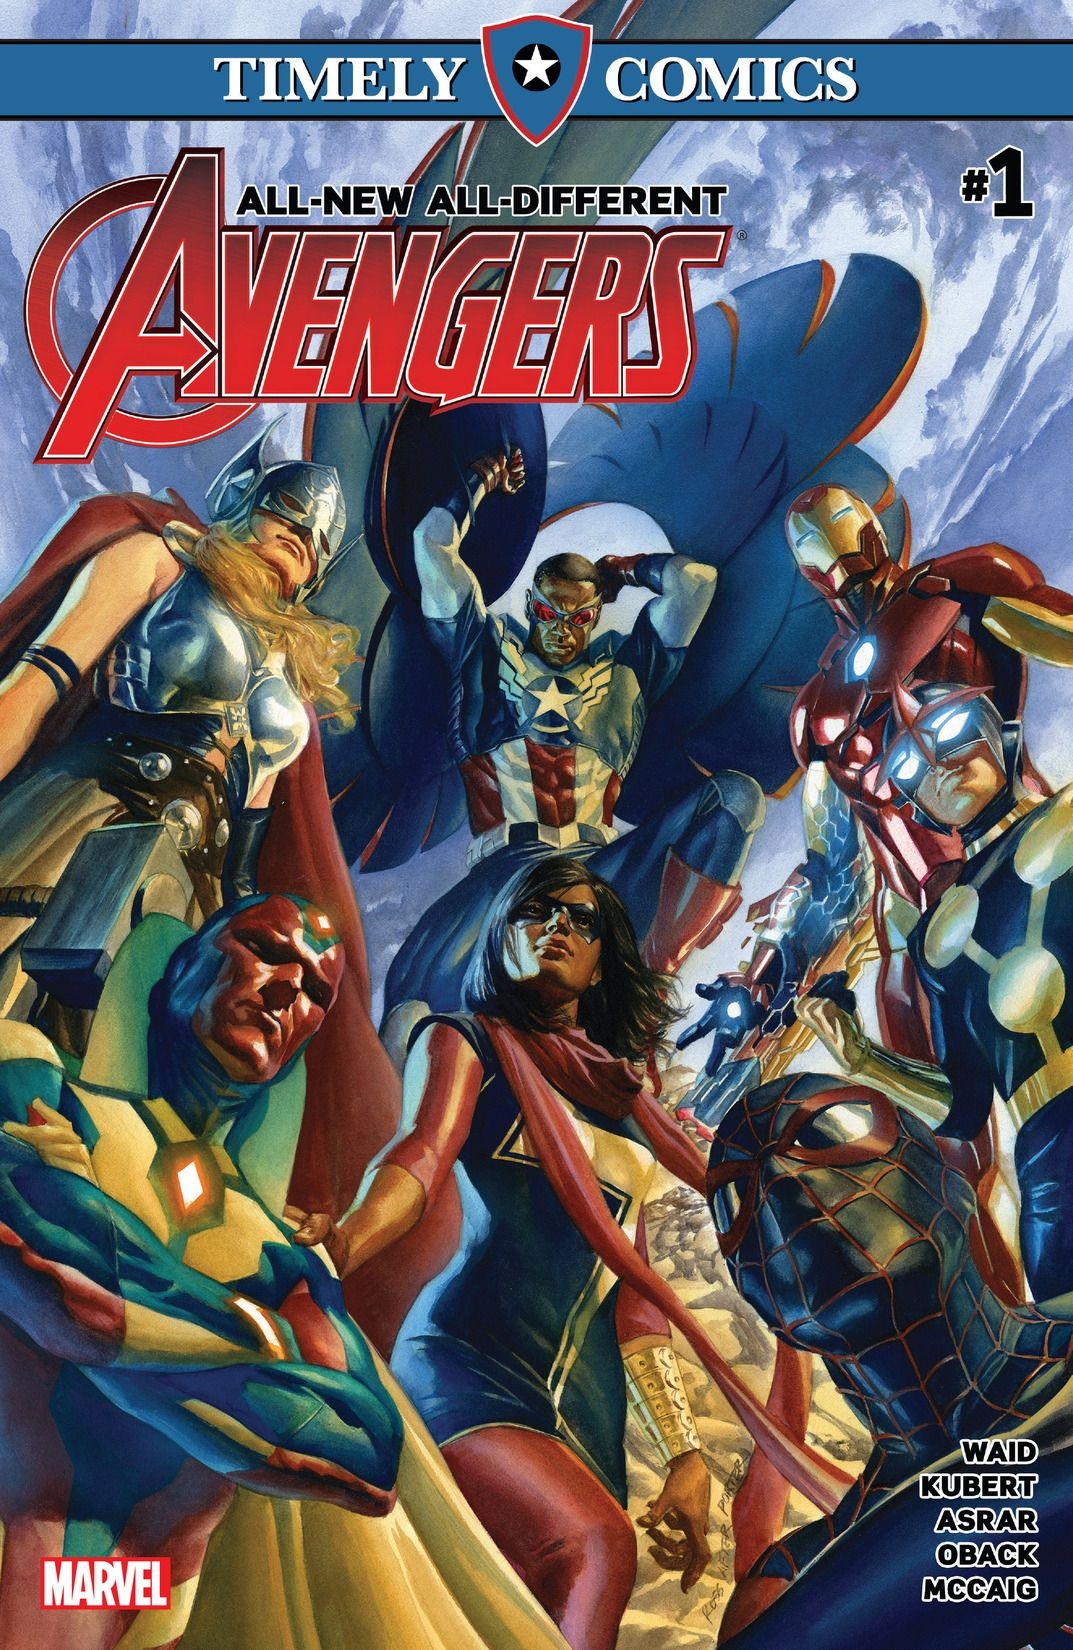 Timely Comics: All-New, All-Different Avengers Vol 1